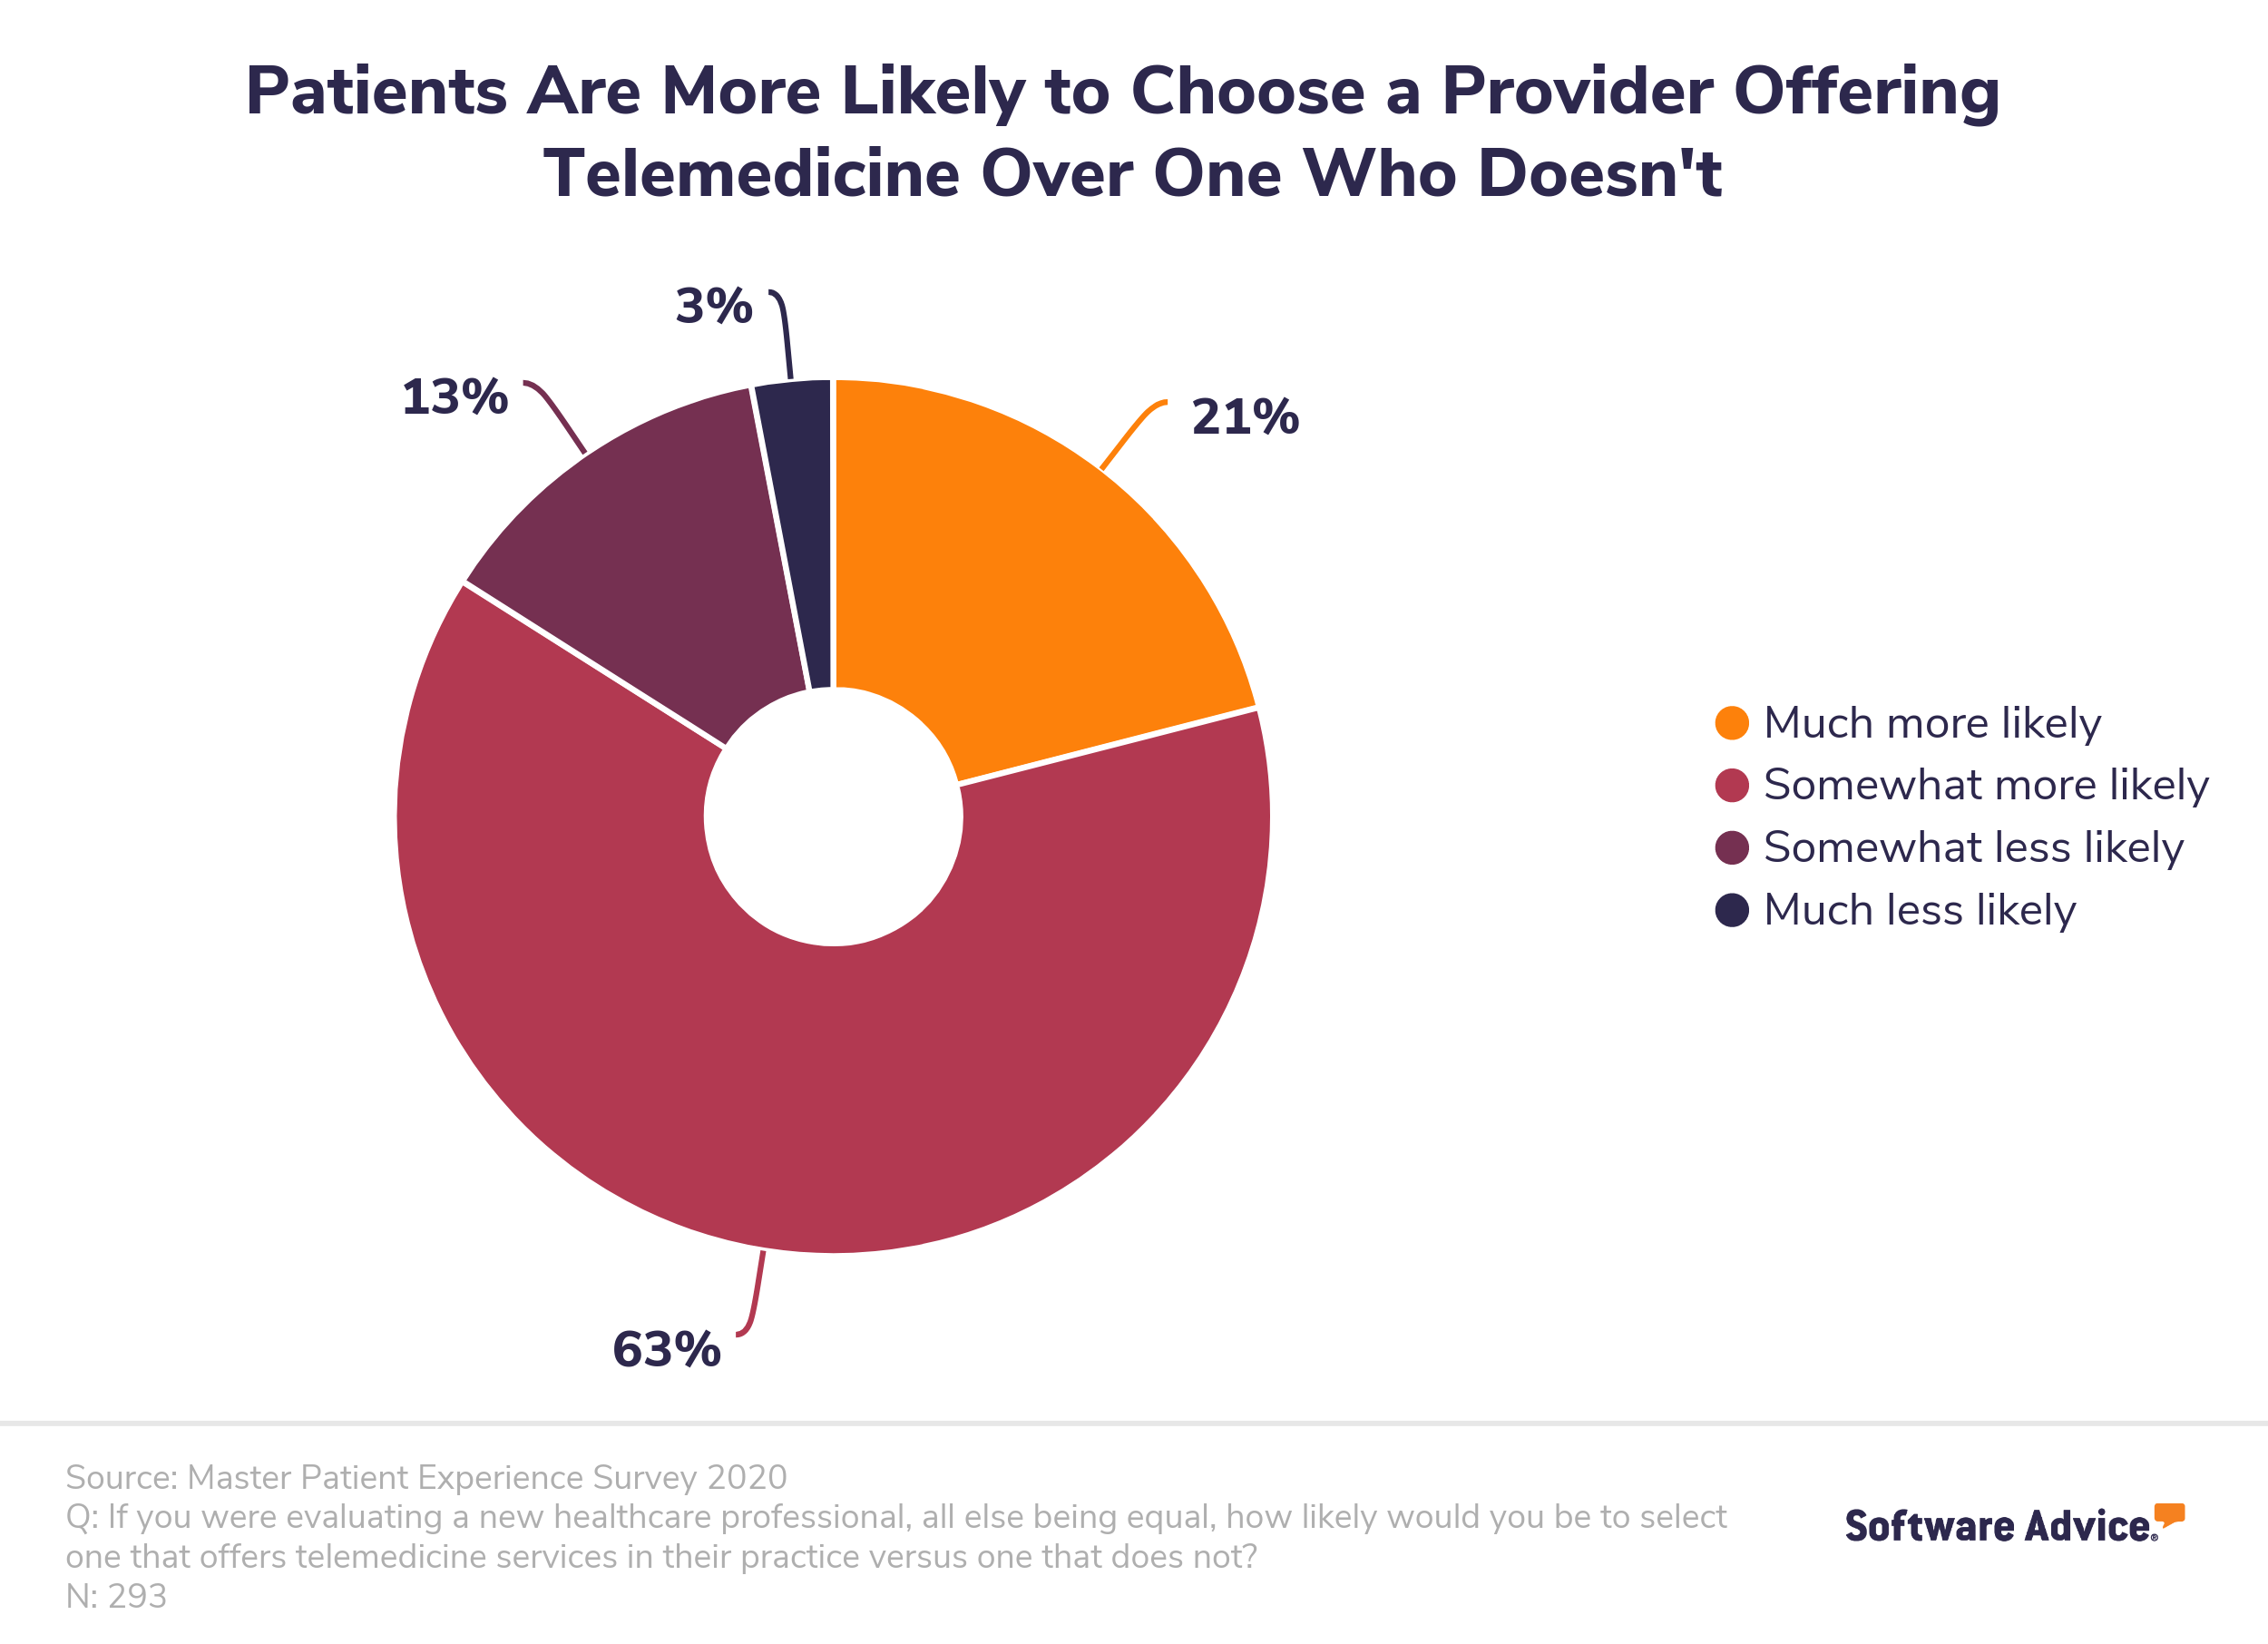 patients are more likely to choose practices that offer telemedicine over ones that don't